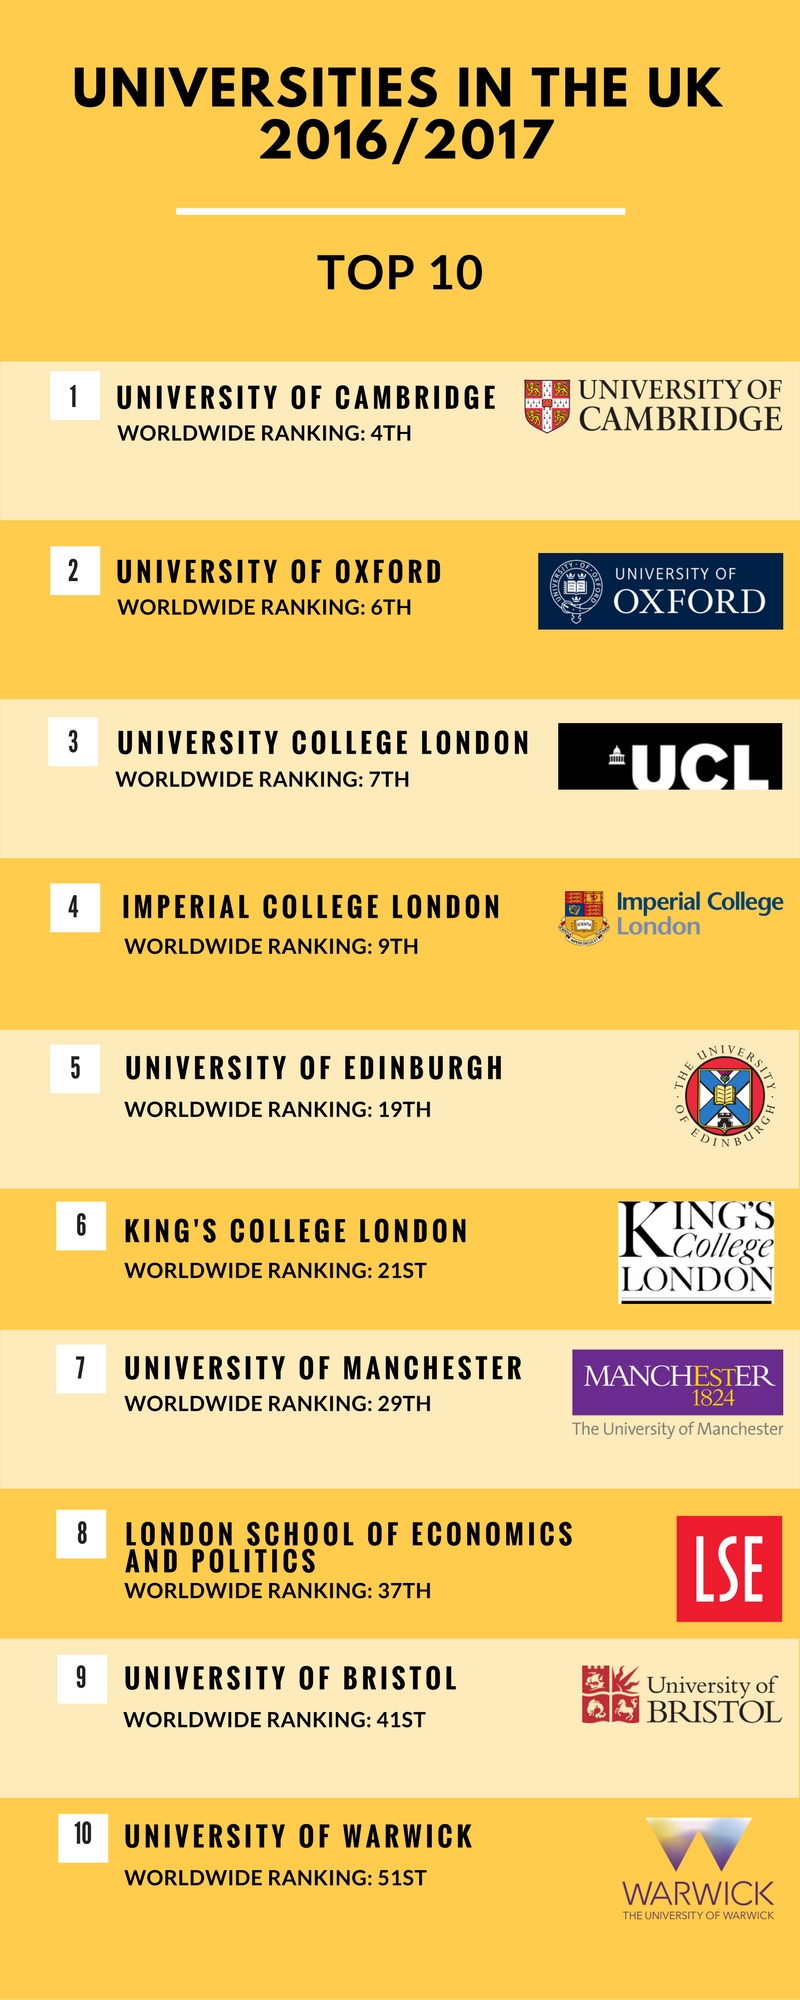 How can i get admission in Masters degree in UK after doing PGDip there itself.?